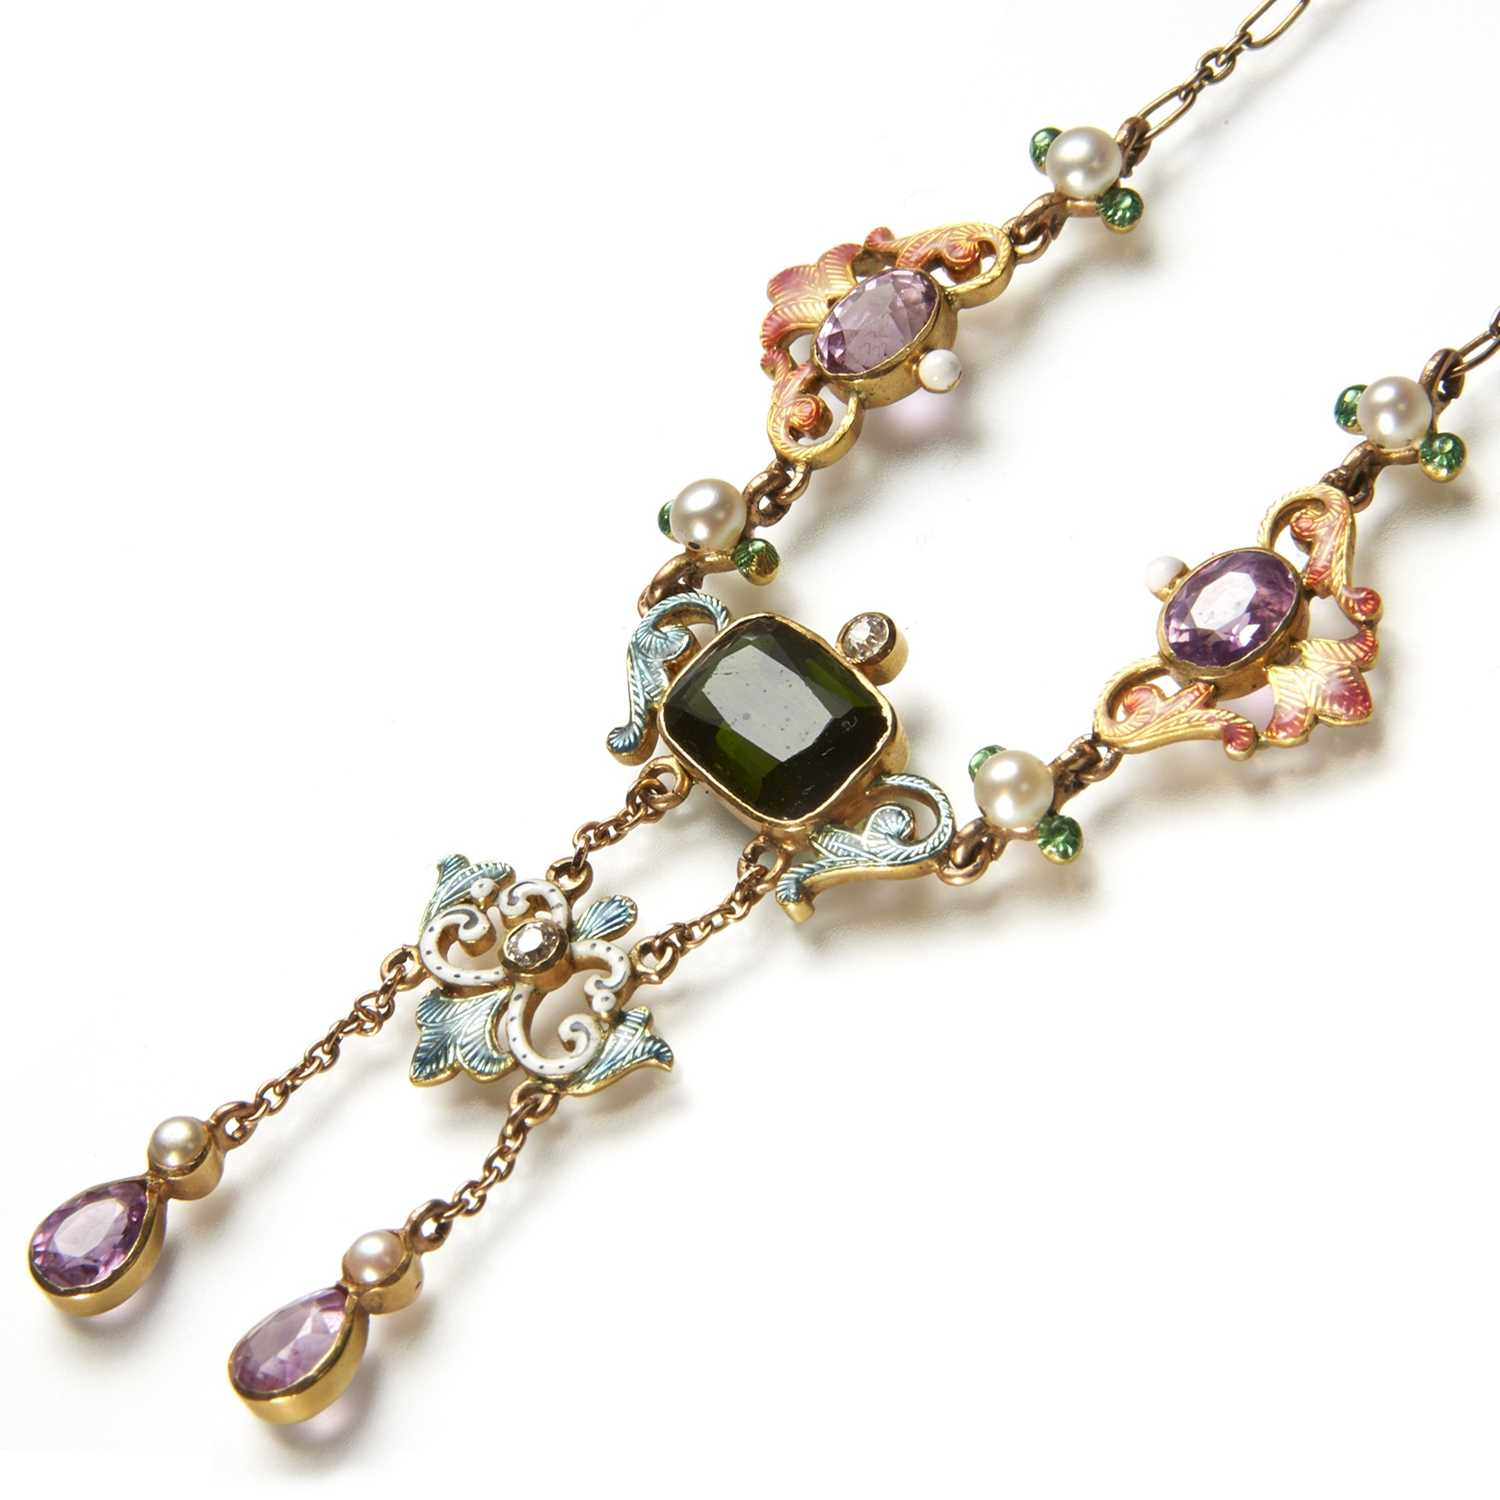 Lot 193 - A late 19th century enamel and vari gem necklace, in the manner of Giuliano